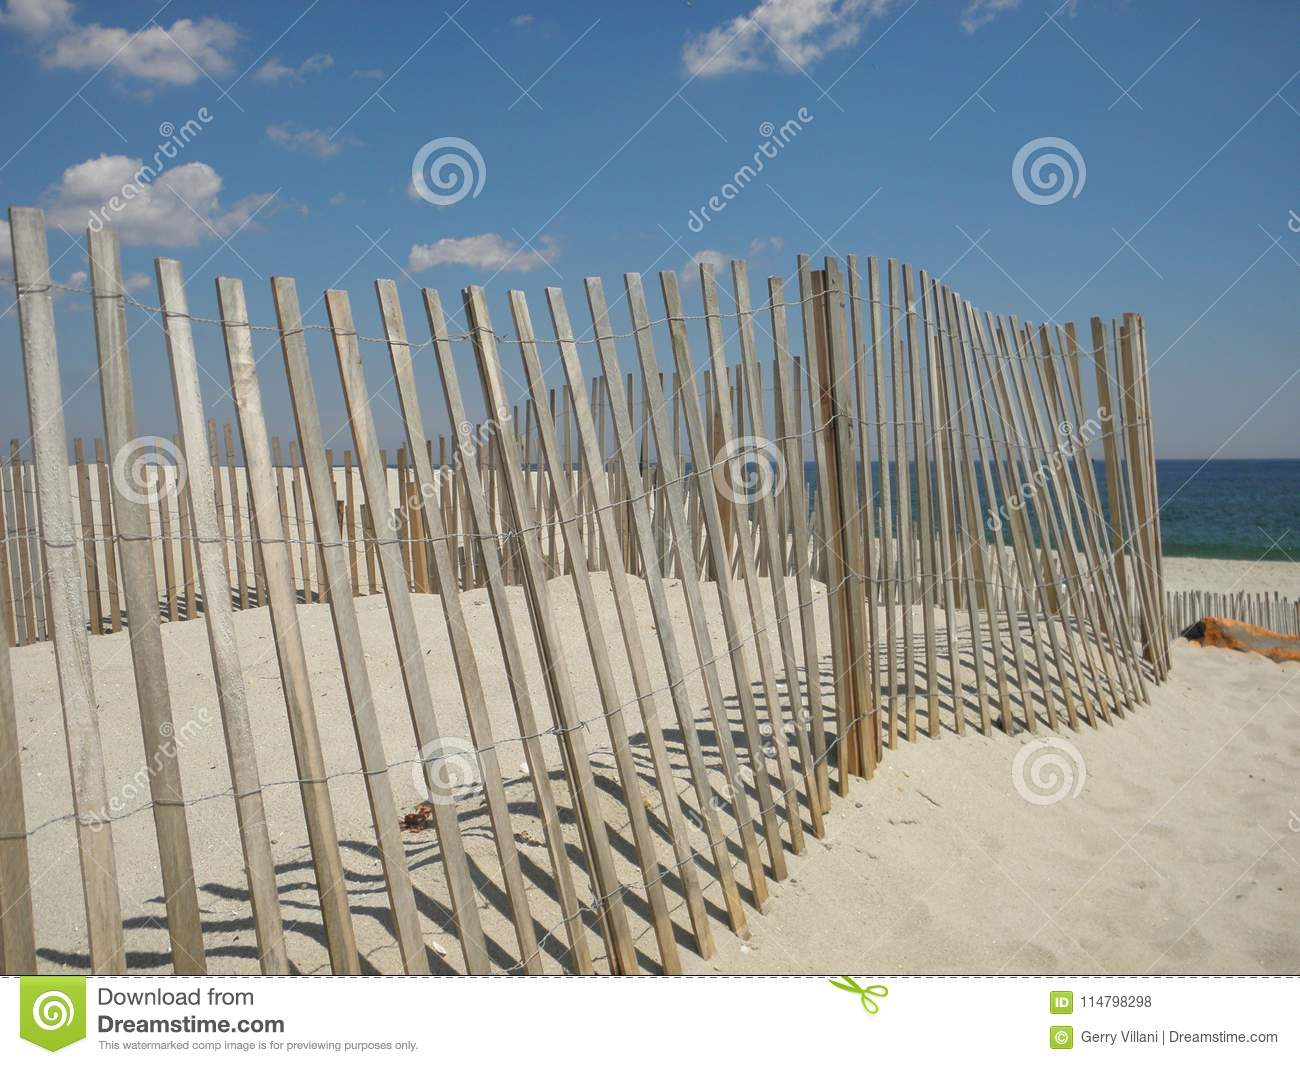 Download Beach Fence On New Jersey Shore Stock Photo - Image of sand, fence: 114798298